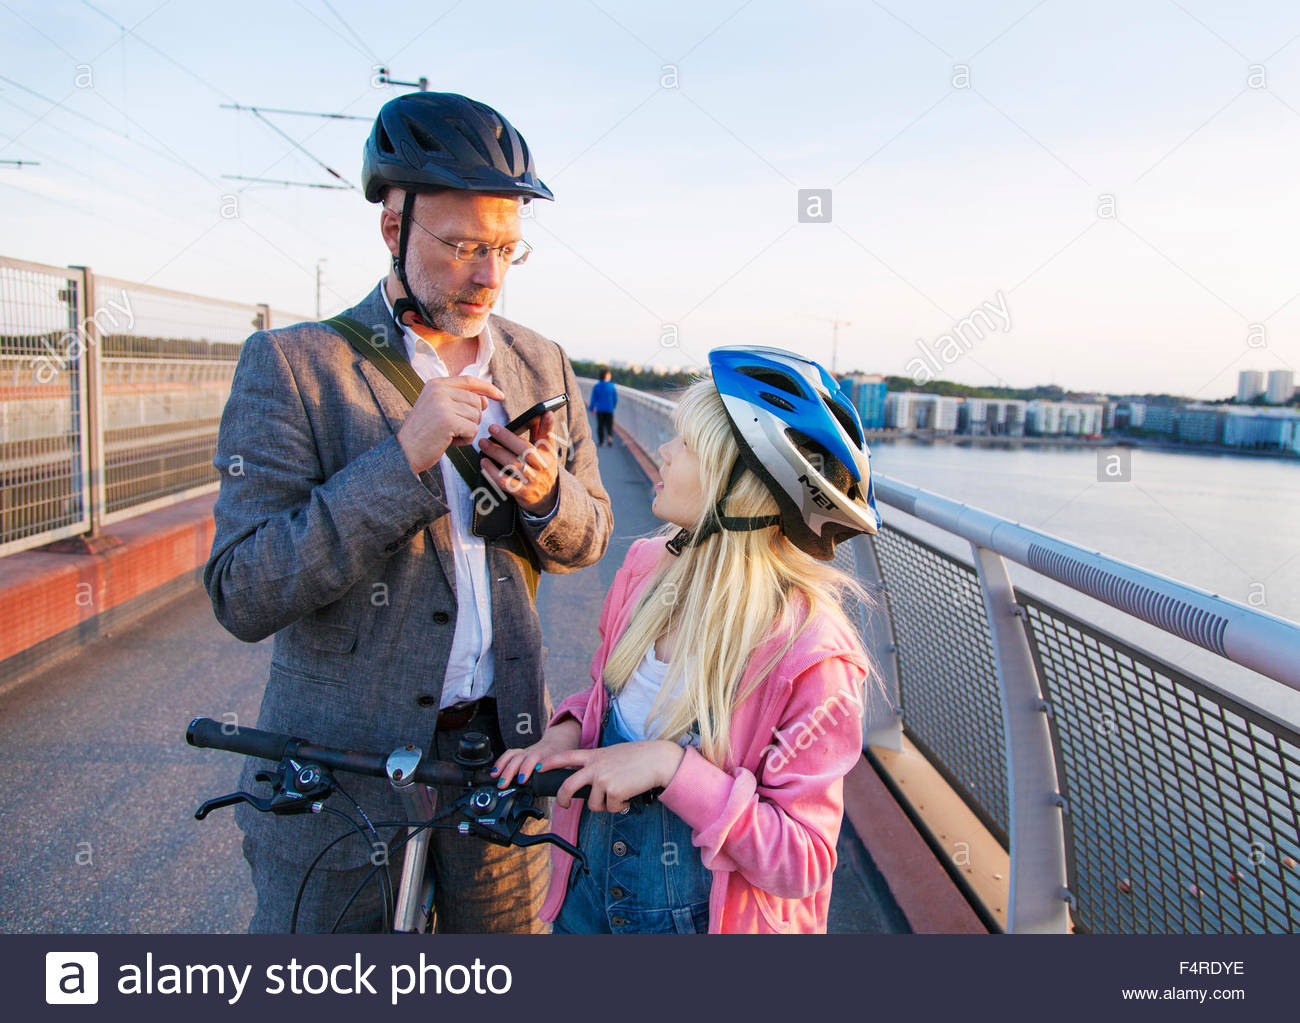 Sweden, Stockholm, Father and daughter (10-11) commuting - Stock Image